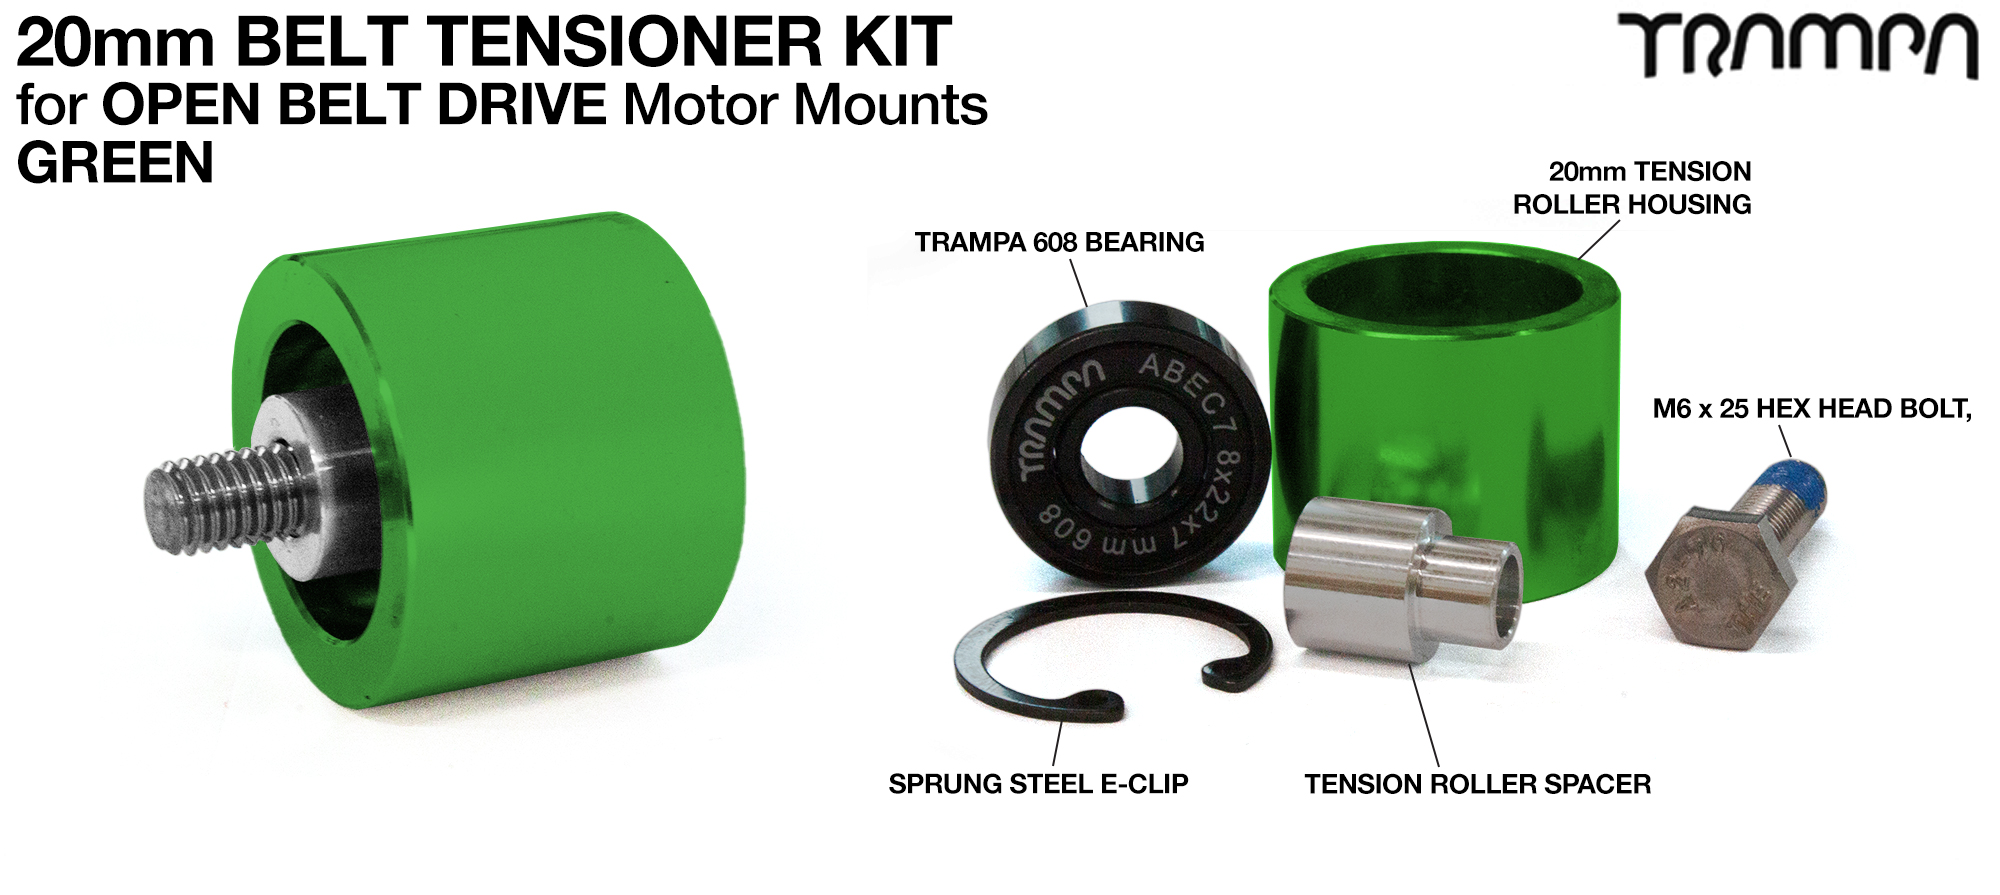 GREEN OBD 20mm Belt Tensioner